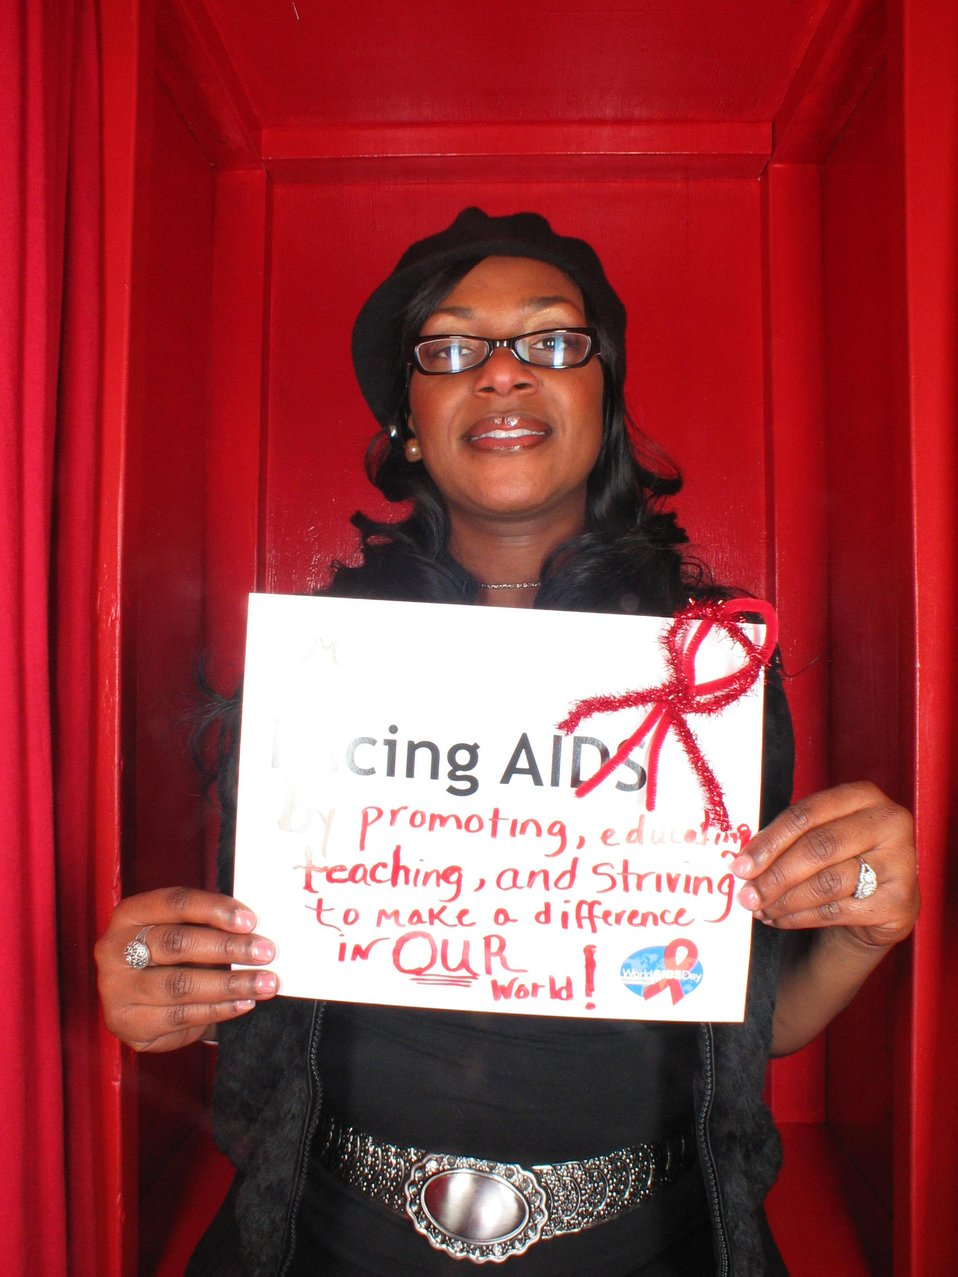 Facing AIDS promoting education, treaching and striving to make a difference in OUR world!